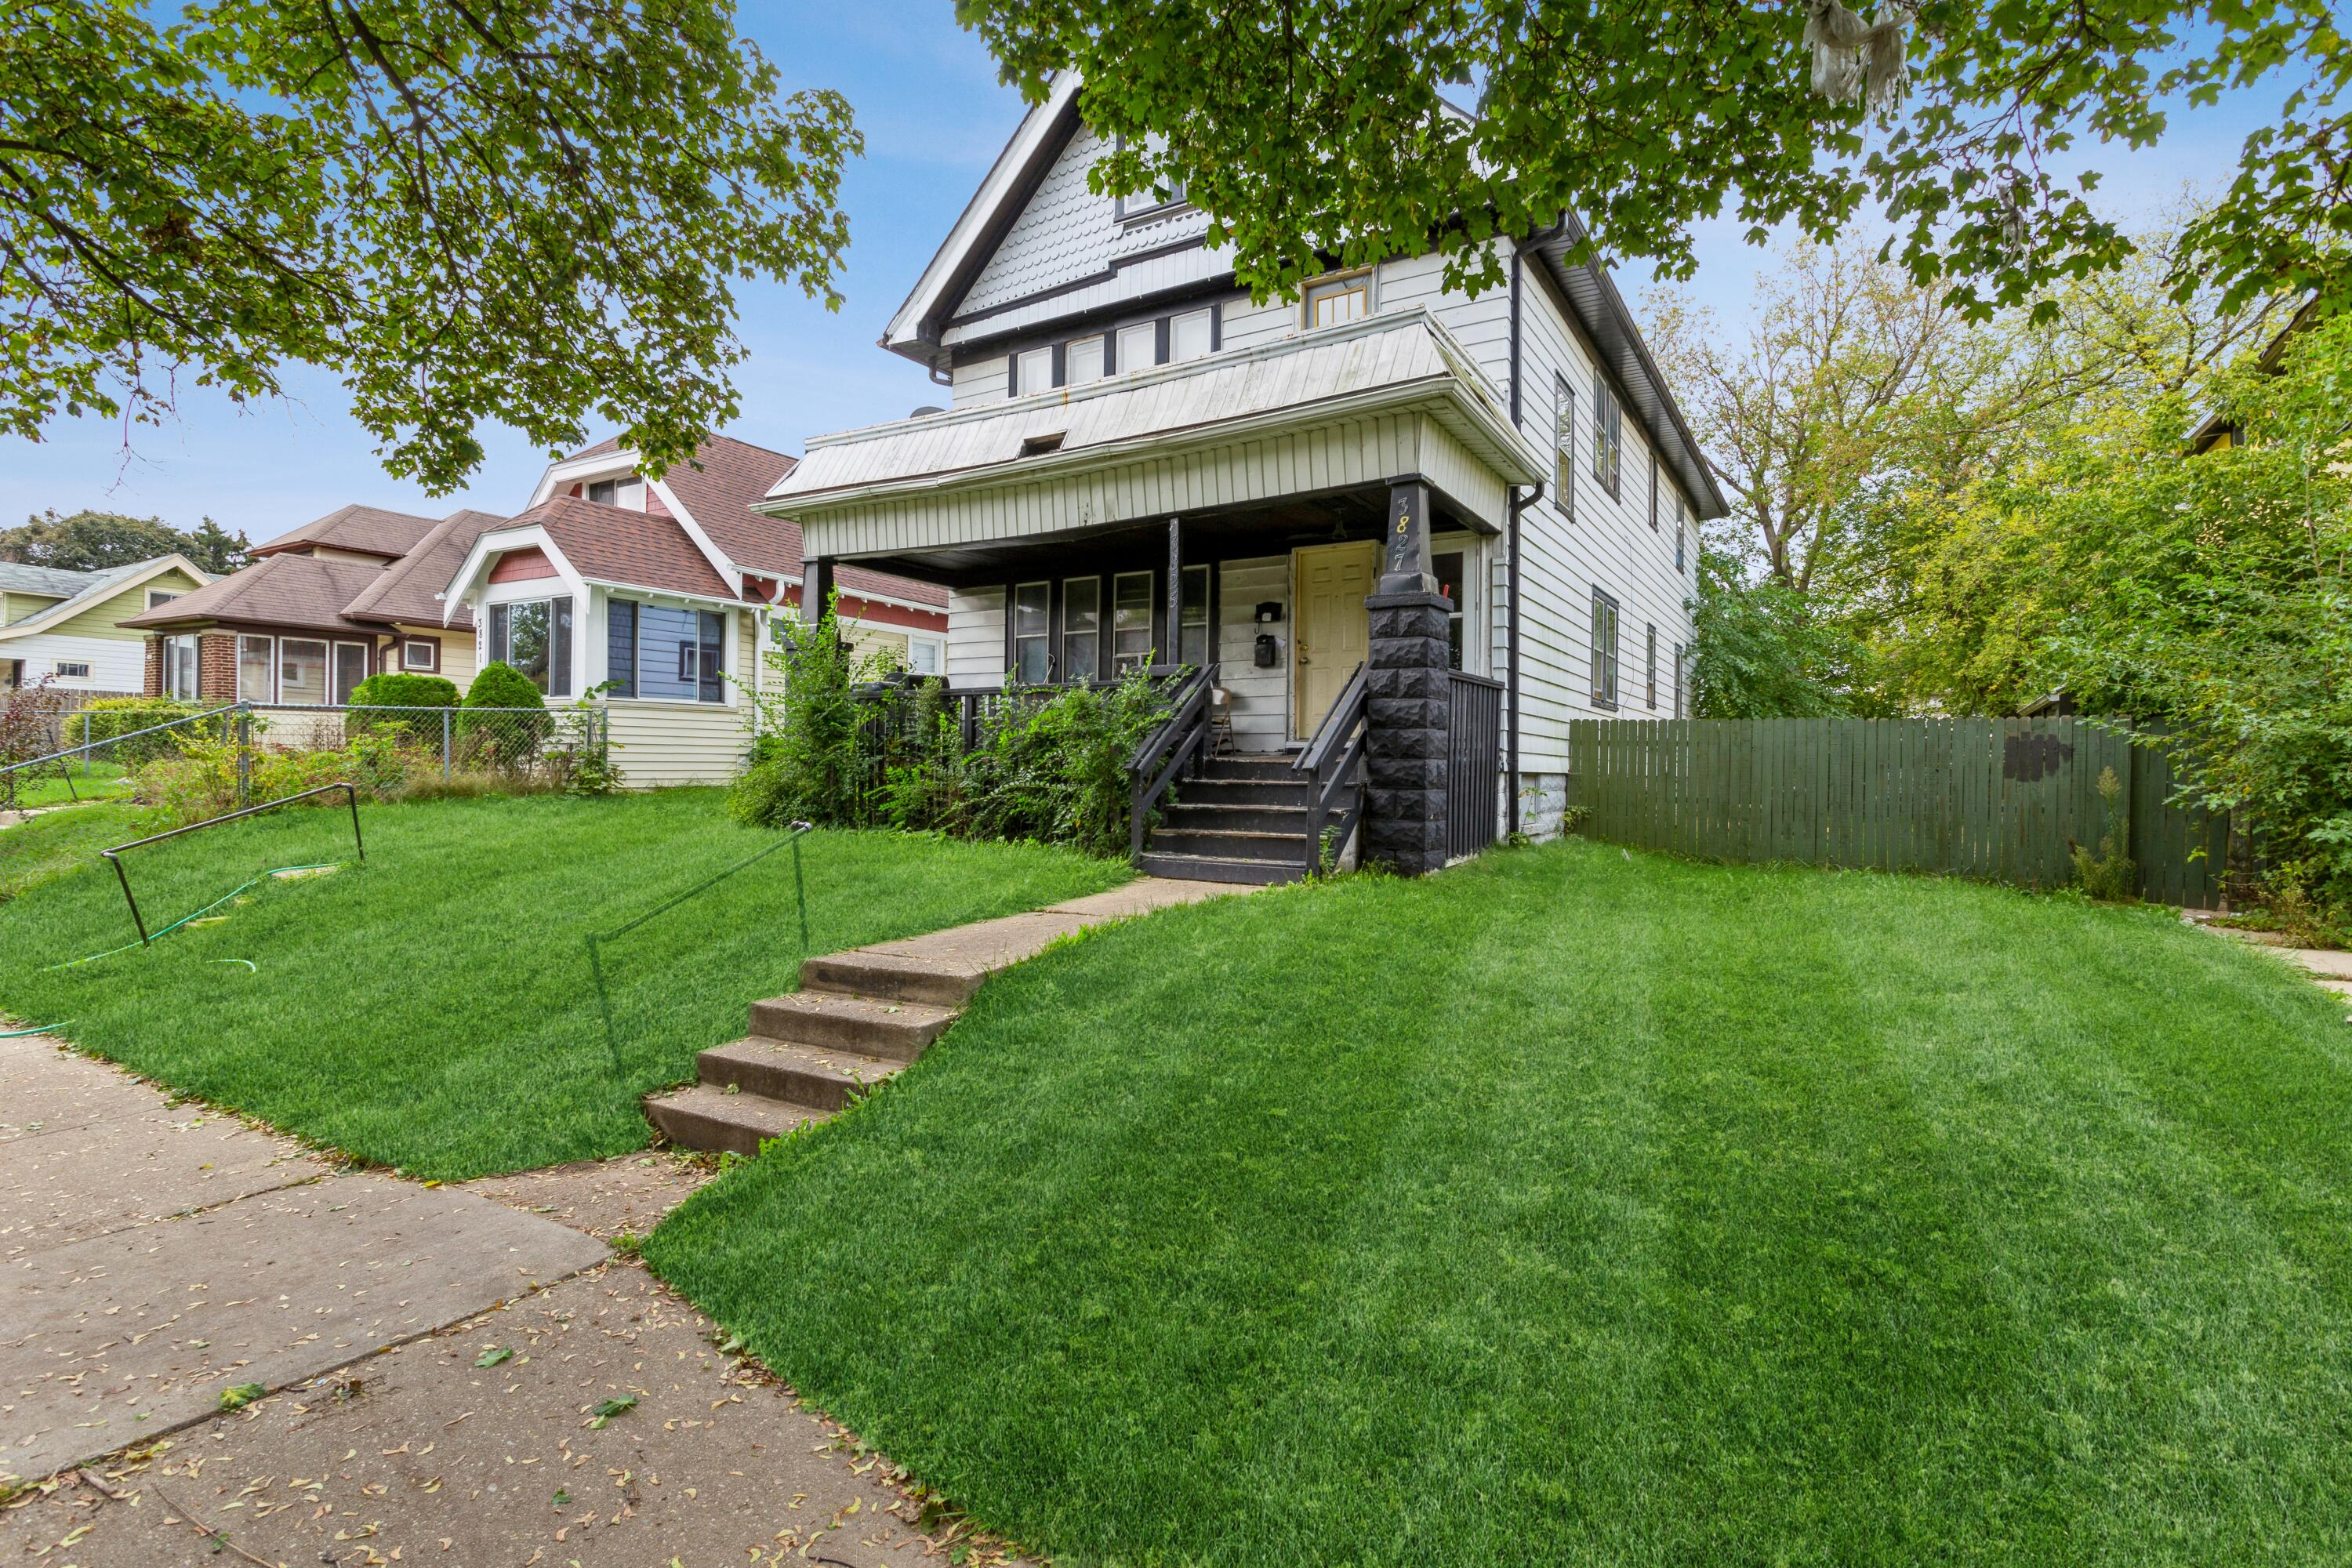 3825 10th St, Milwaukee, Wisconsin 53206, 2 Bedrooms Bedrooms, 5 Rooms Rooms,1 BathroomBathrooms,Two-Family,For Sale,10th St,1,1768274